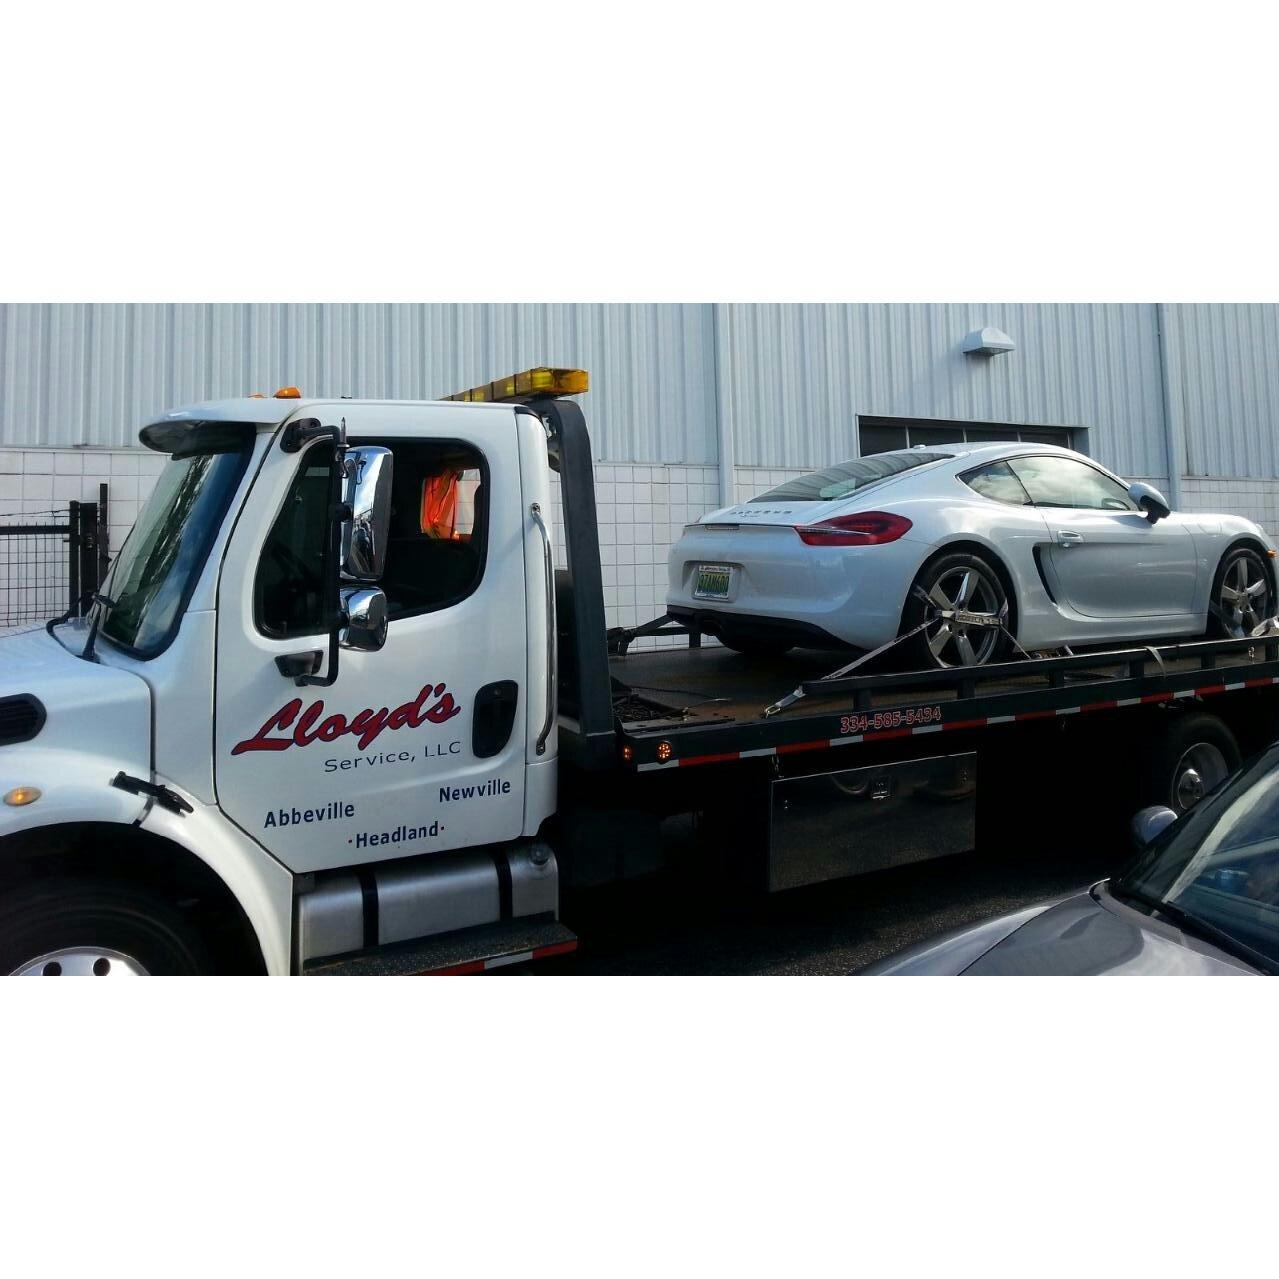 Lloyd's 24/7 Towing & Recovery image 2